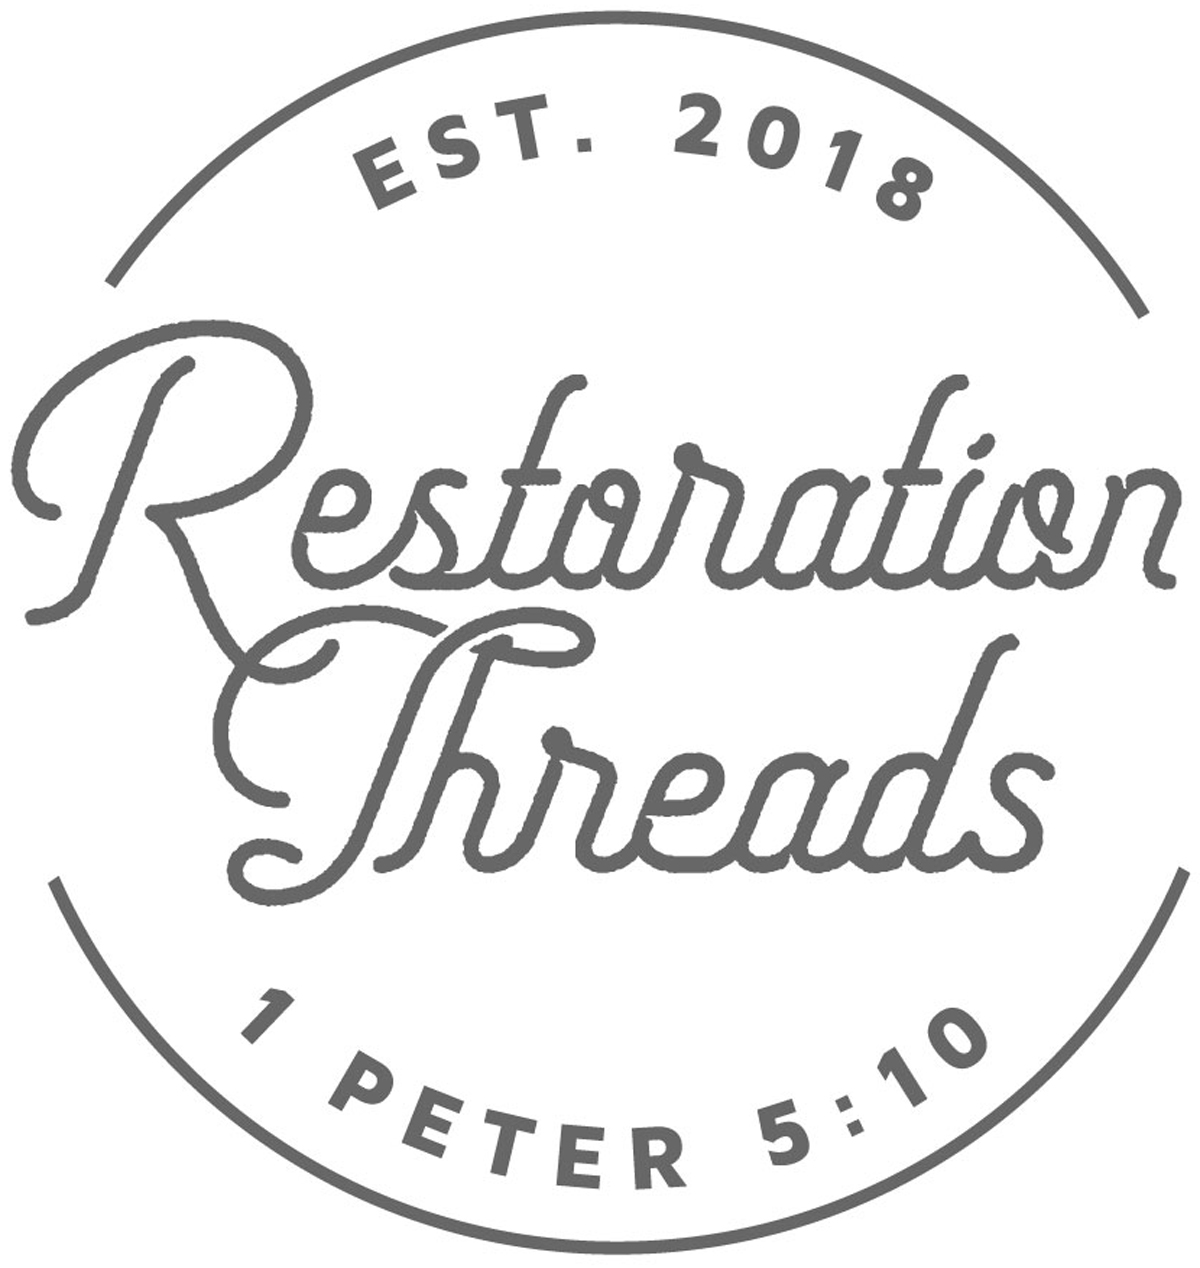 Restoration Threads Logo.jpg